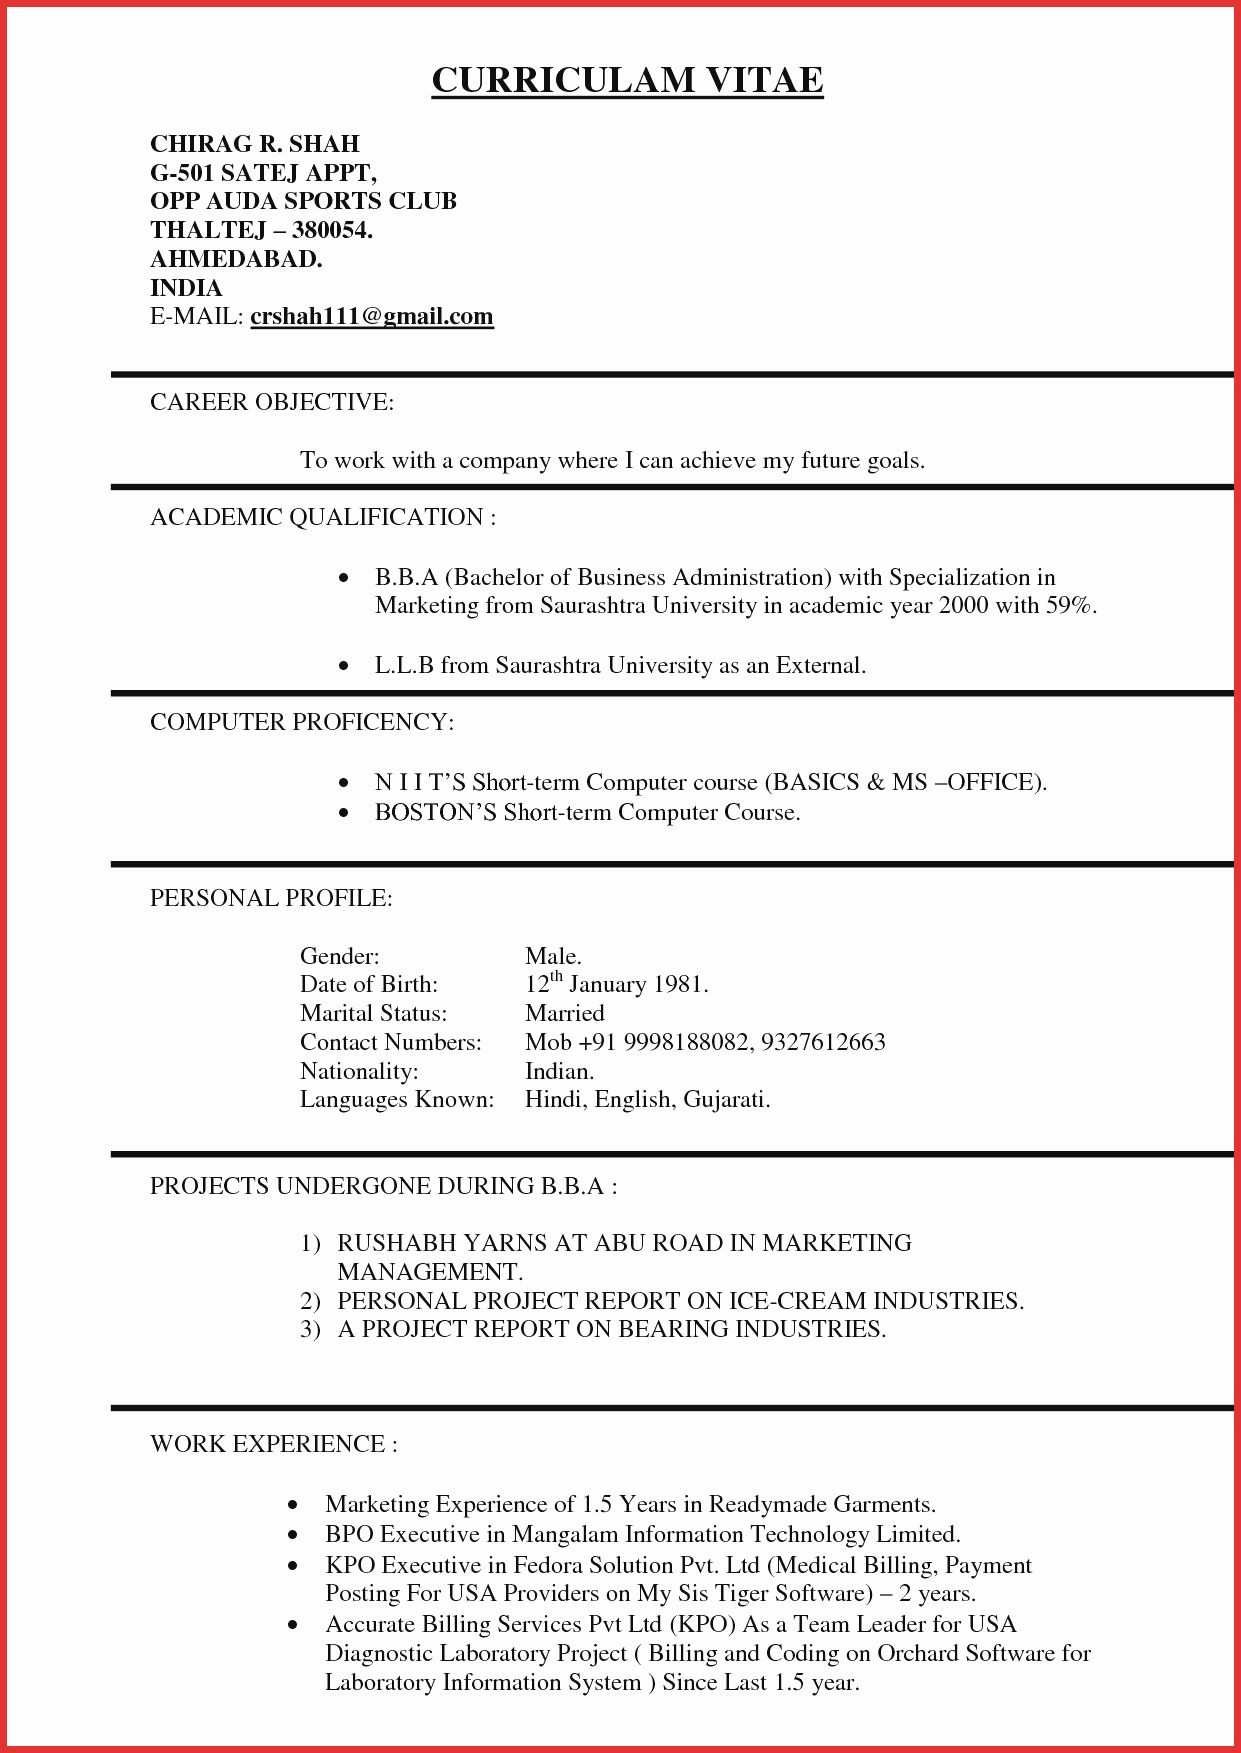 Experience In Marketing Resume Resume Format 3 Years Experience Marketing Experience Format